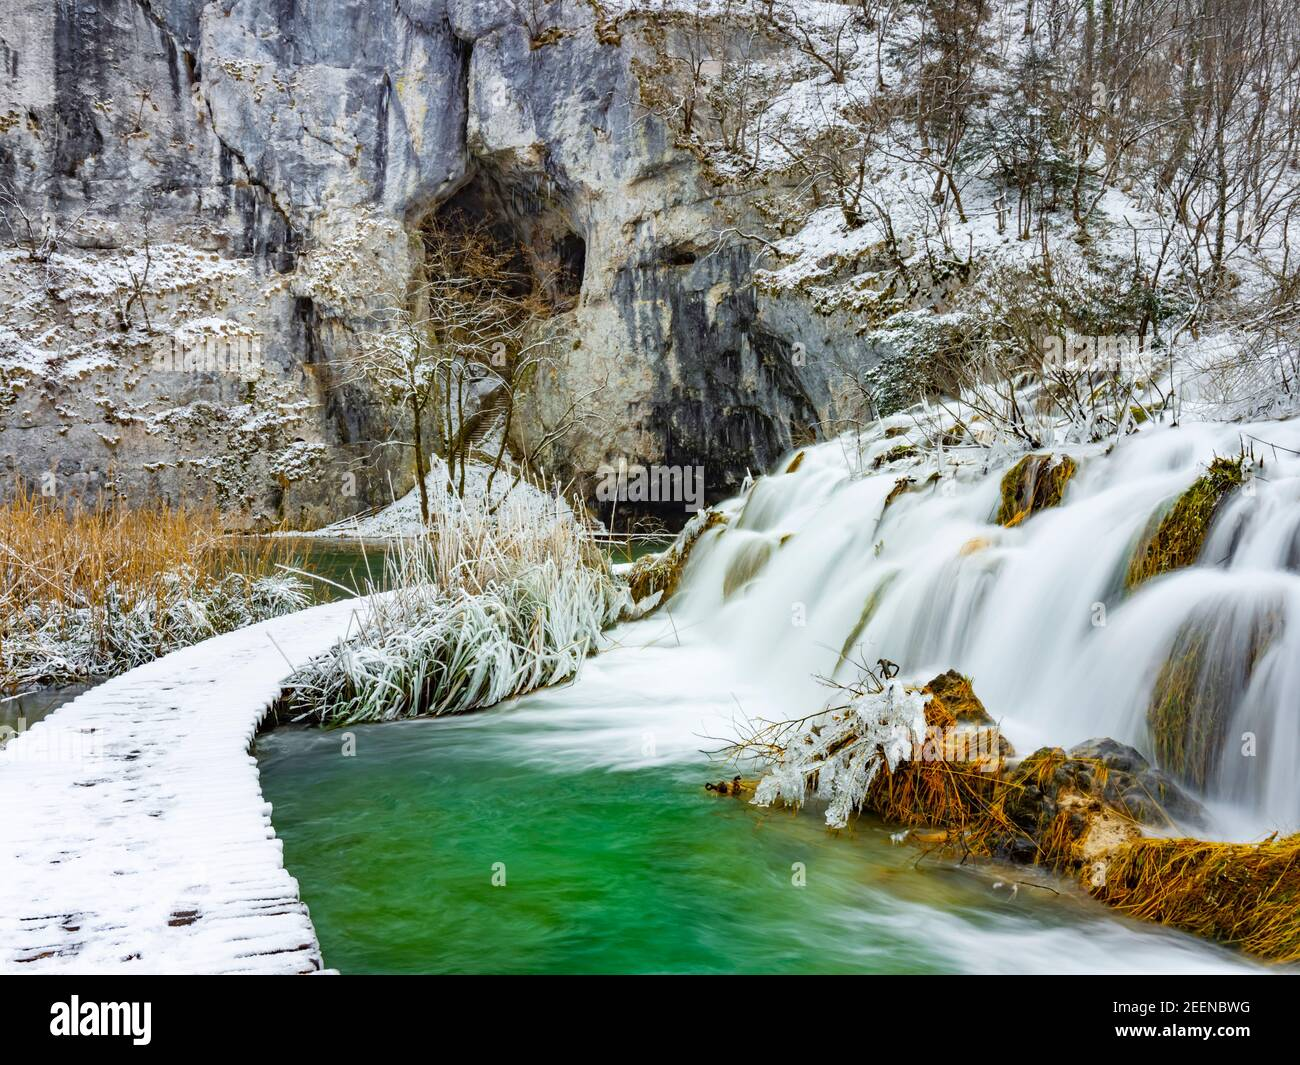 Wooden walkway trail path trailparh promenade in Plitvice lakes Croatia Europe Winter under covered cover snow ice waterflow water flowing flow Stock Photo